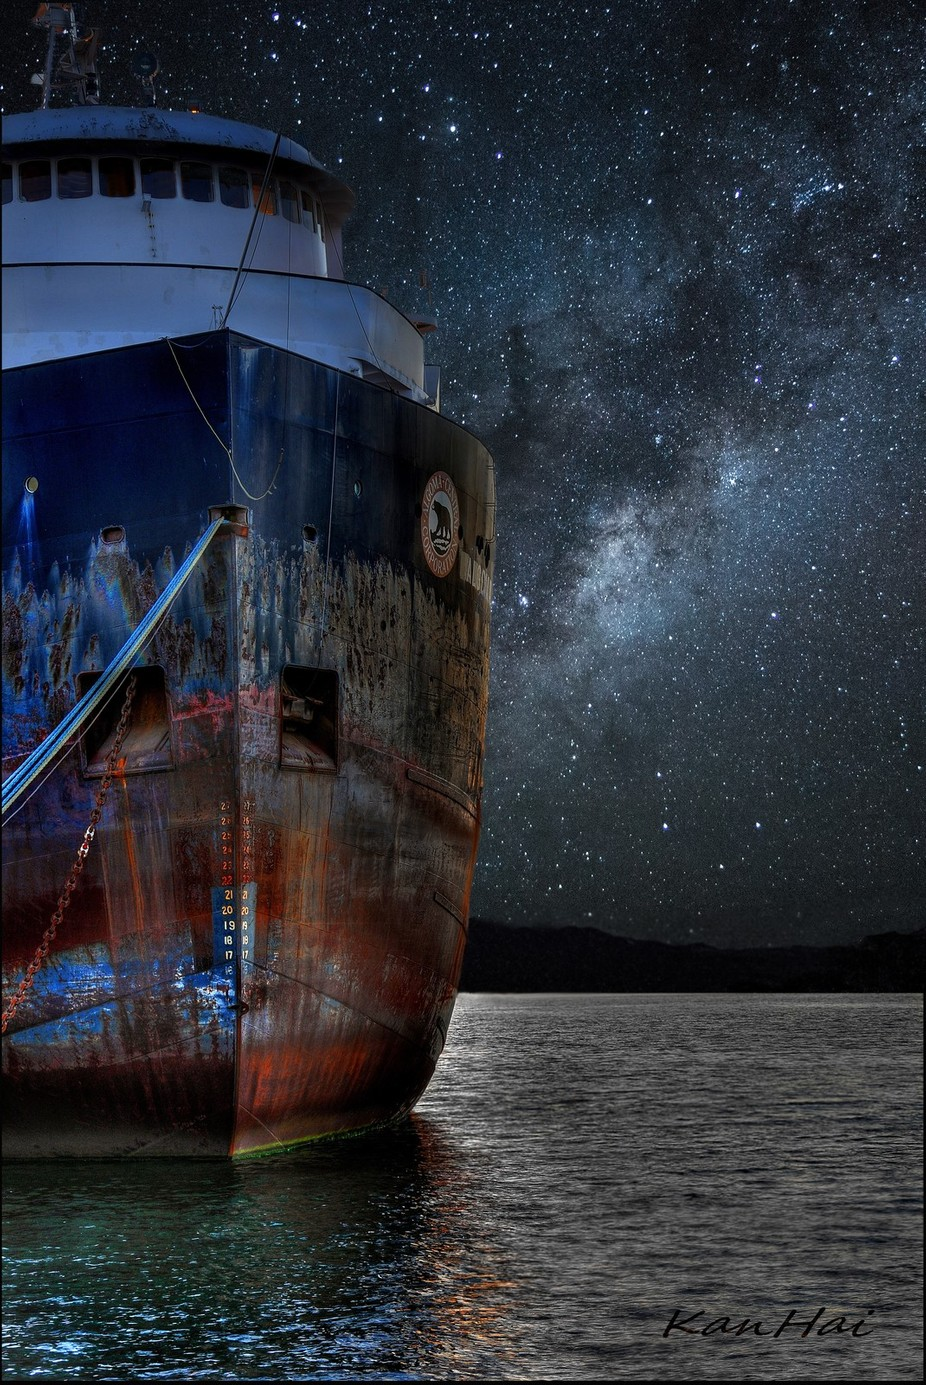 Waiting to Sail by neilkanhai - Large Photo Contest